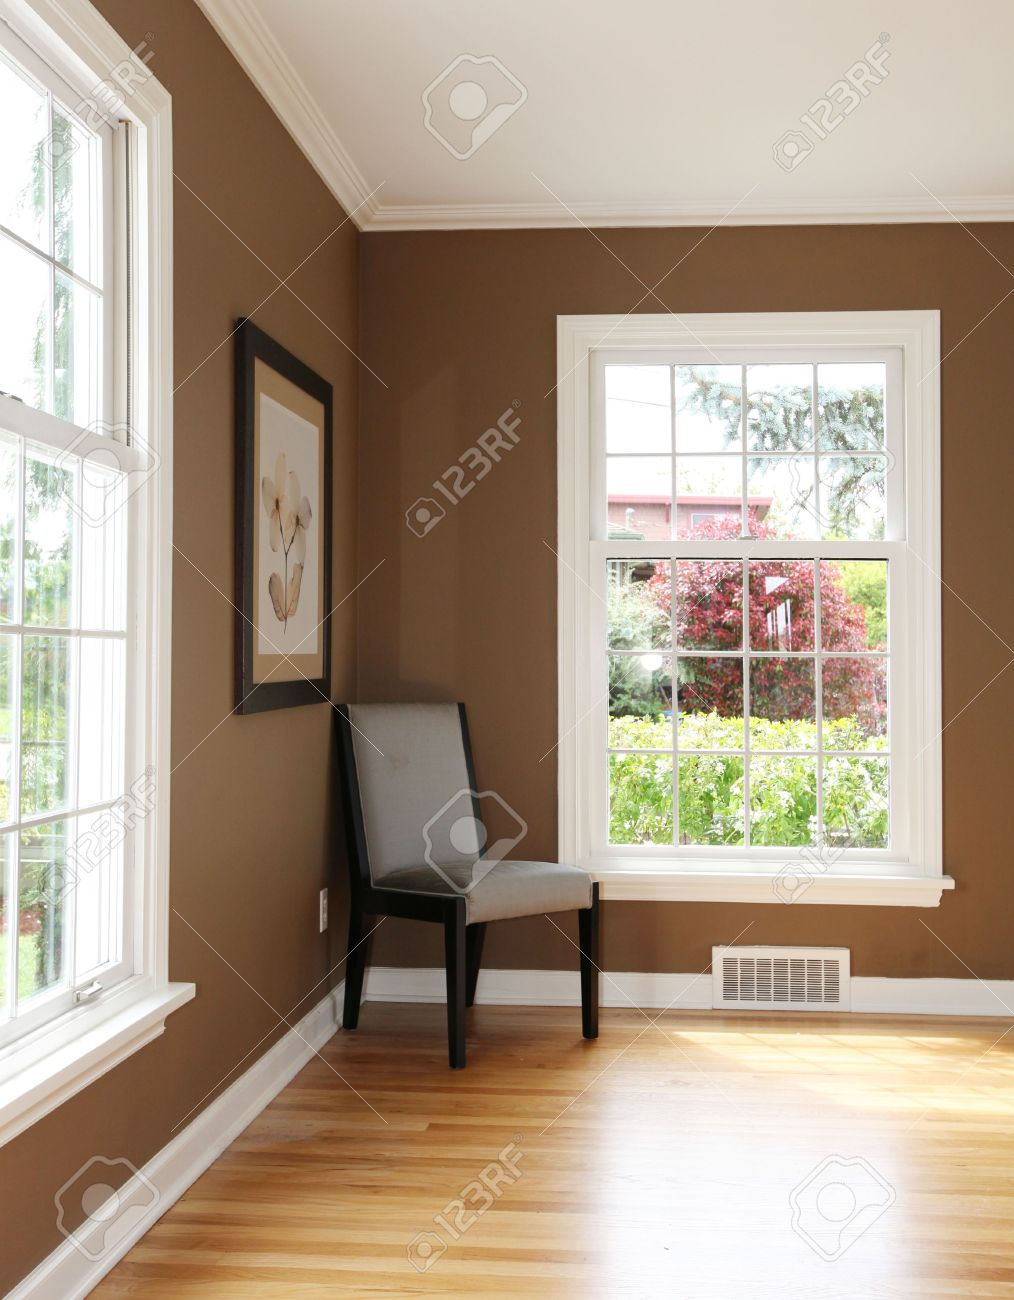 Living Room Corner With Chair And Two Windows Hardwood Floor Stock Photo